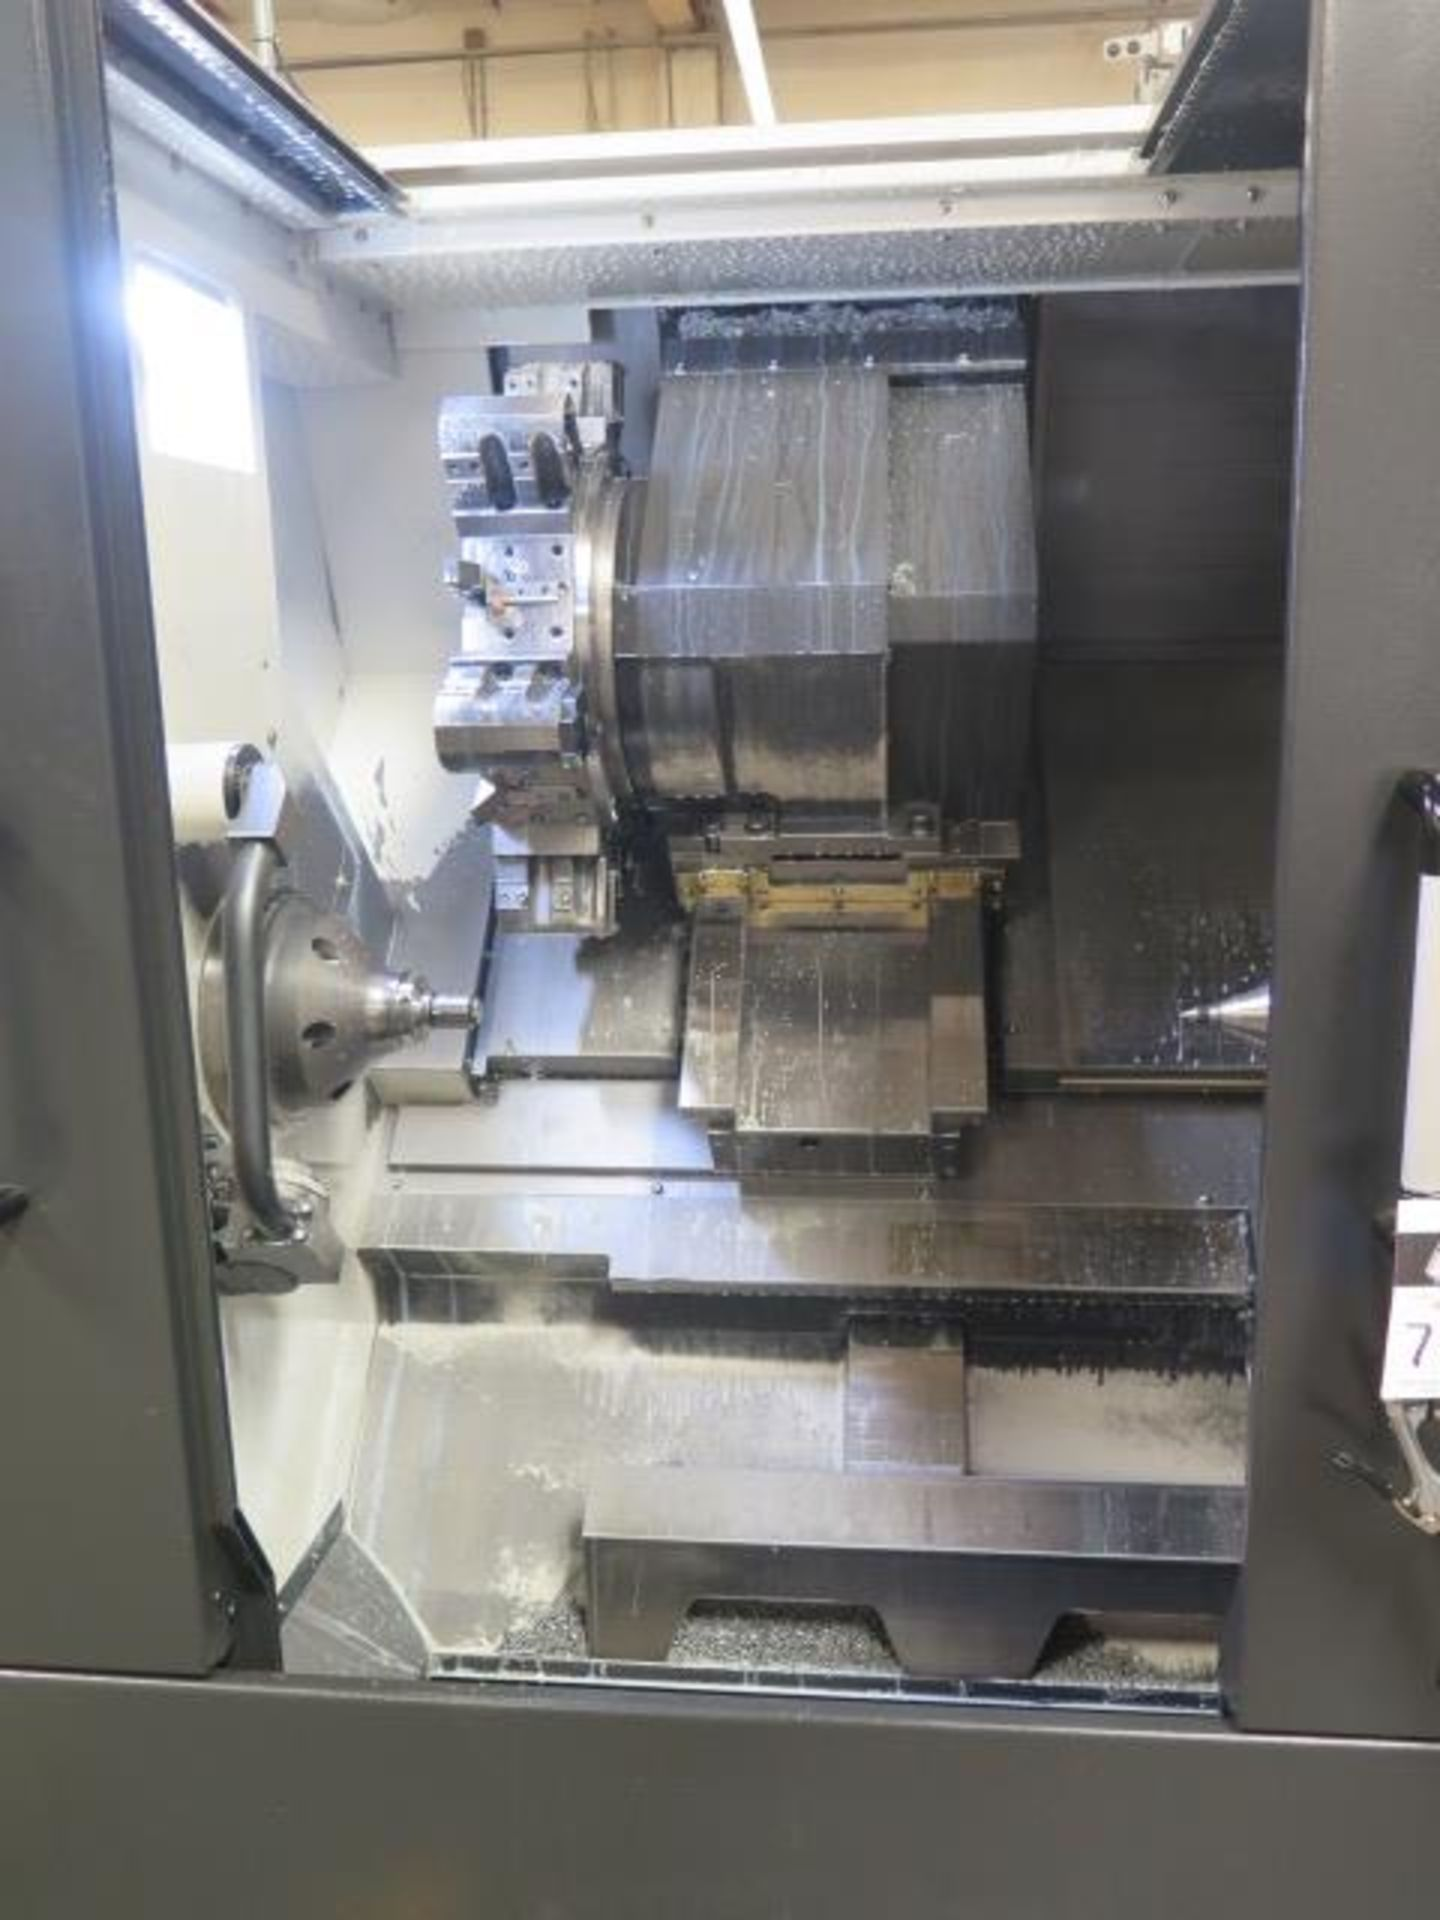 2017 Hyundai WIA L300LA CNC Turning Center s/n G3726-0108 w/ Fanuc i-Series Controls, SOLD AS IS - Image 6 of 18